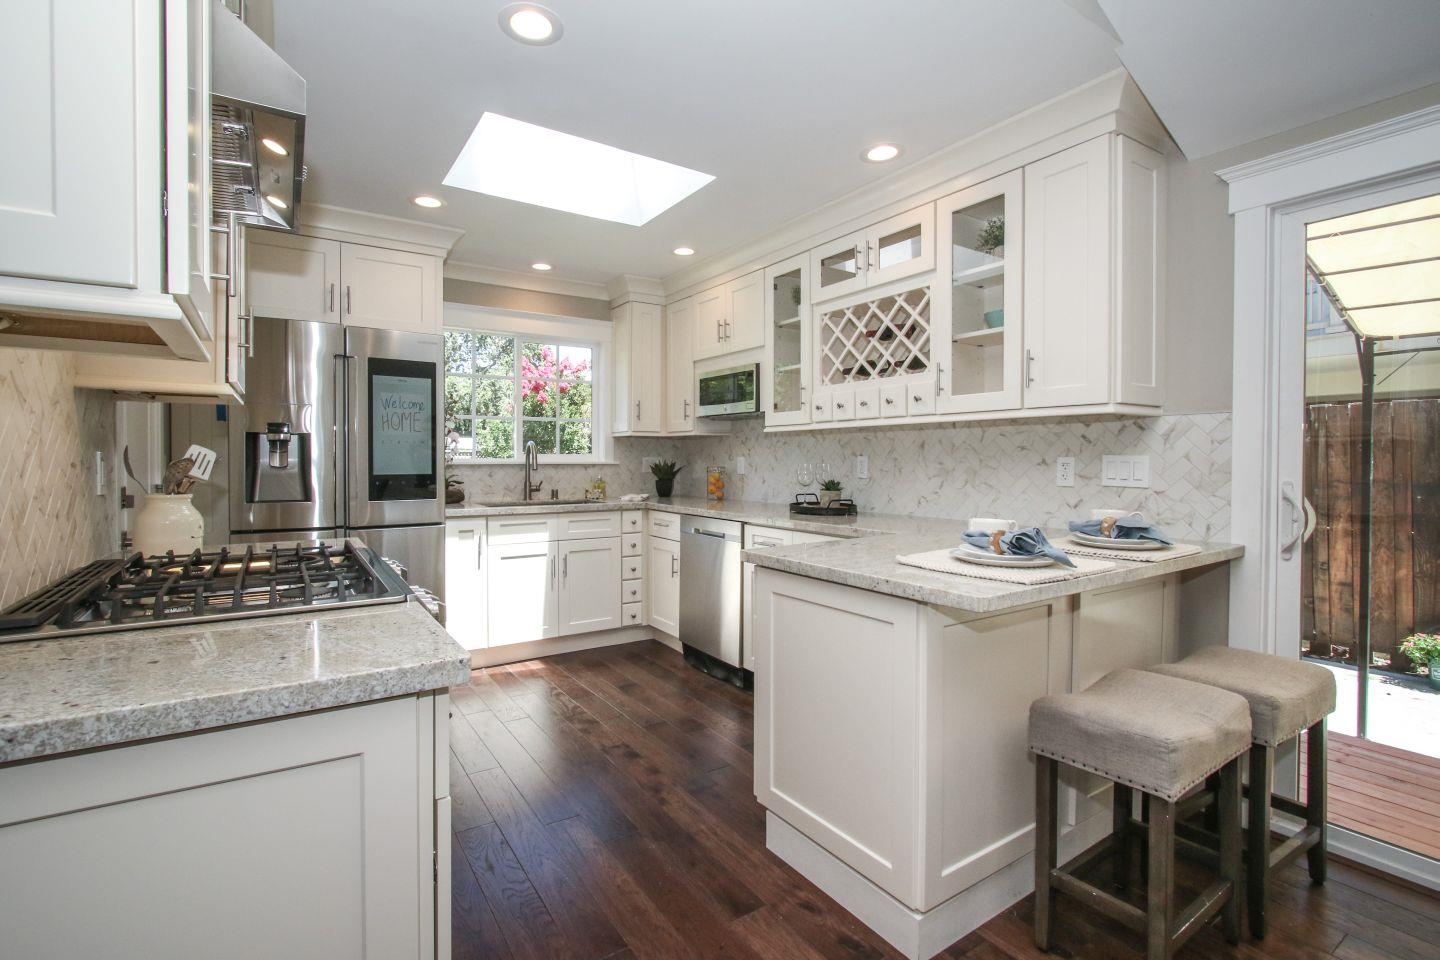 Additional photo for property listing at 555 Redwood Avenue  Redwood City, Kalifornien 94061 Vereinigte Staaten